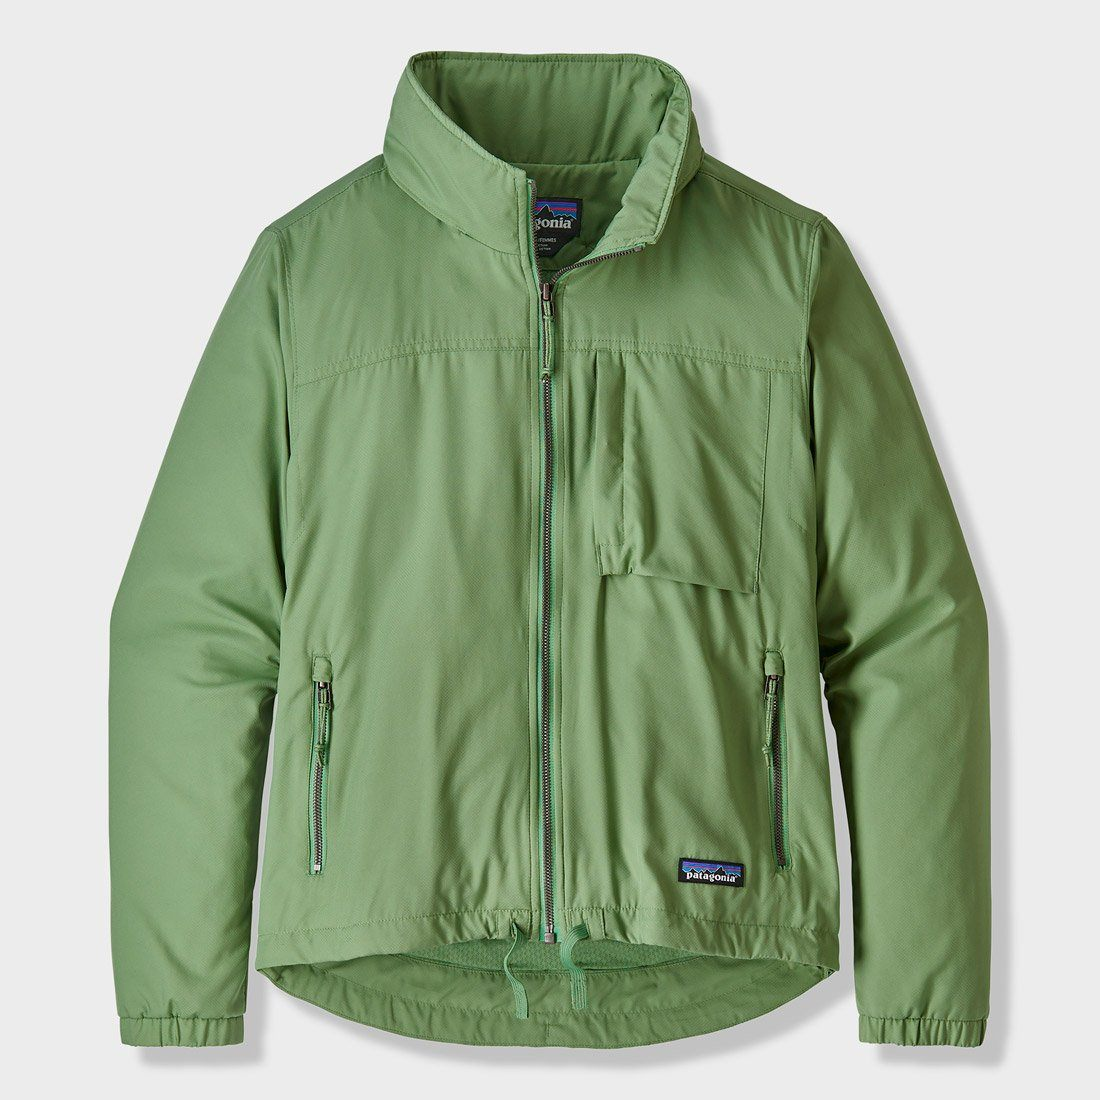 Patagonia Women's Mountain View Jacket Matcha Green